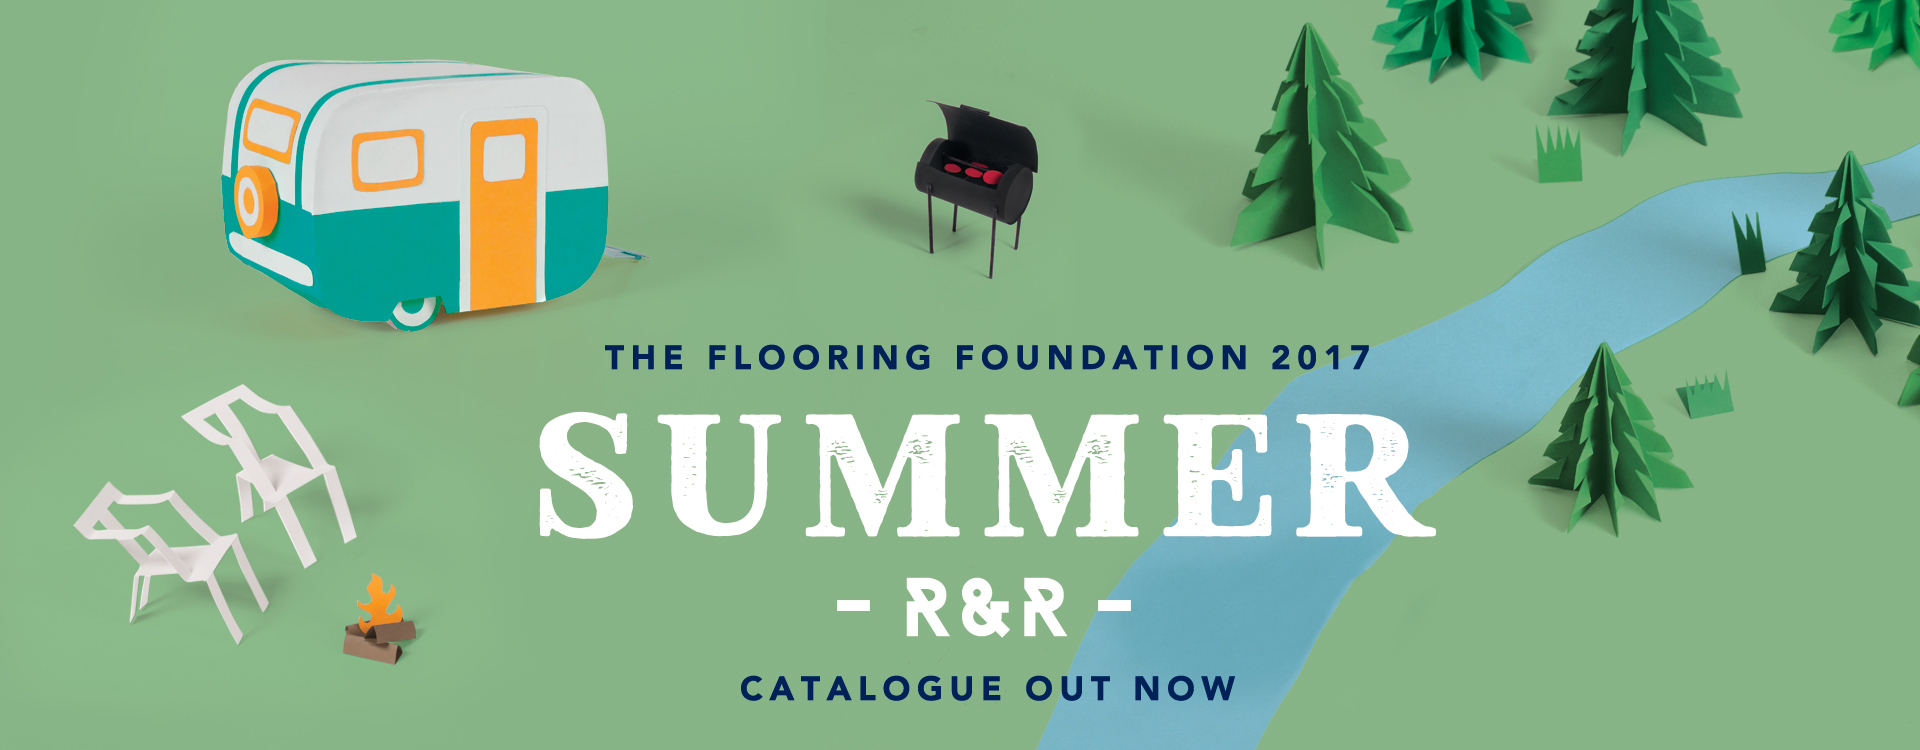 The Flooring Foundation 2017 | R&R Promotion